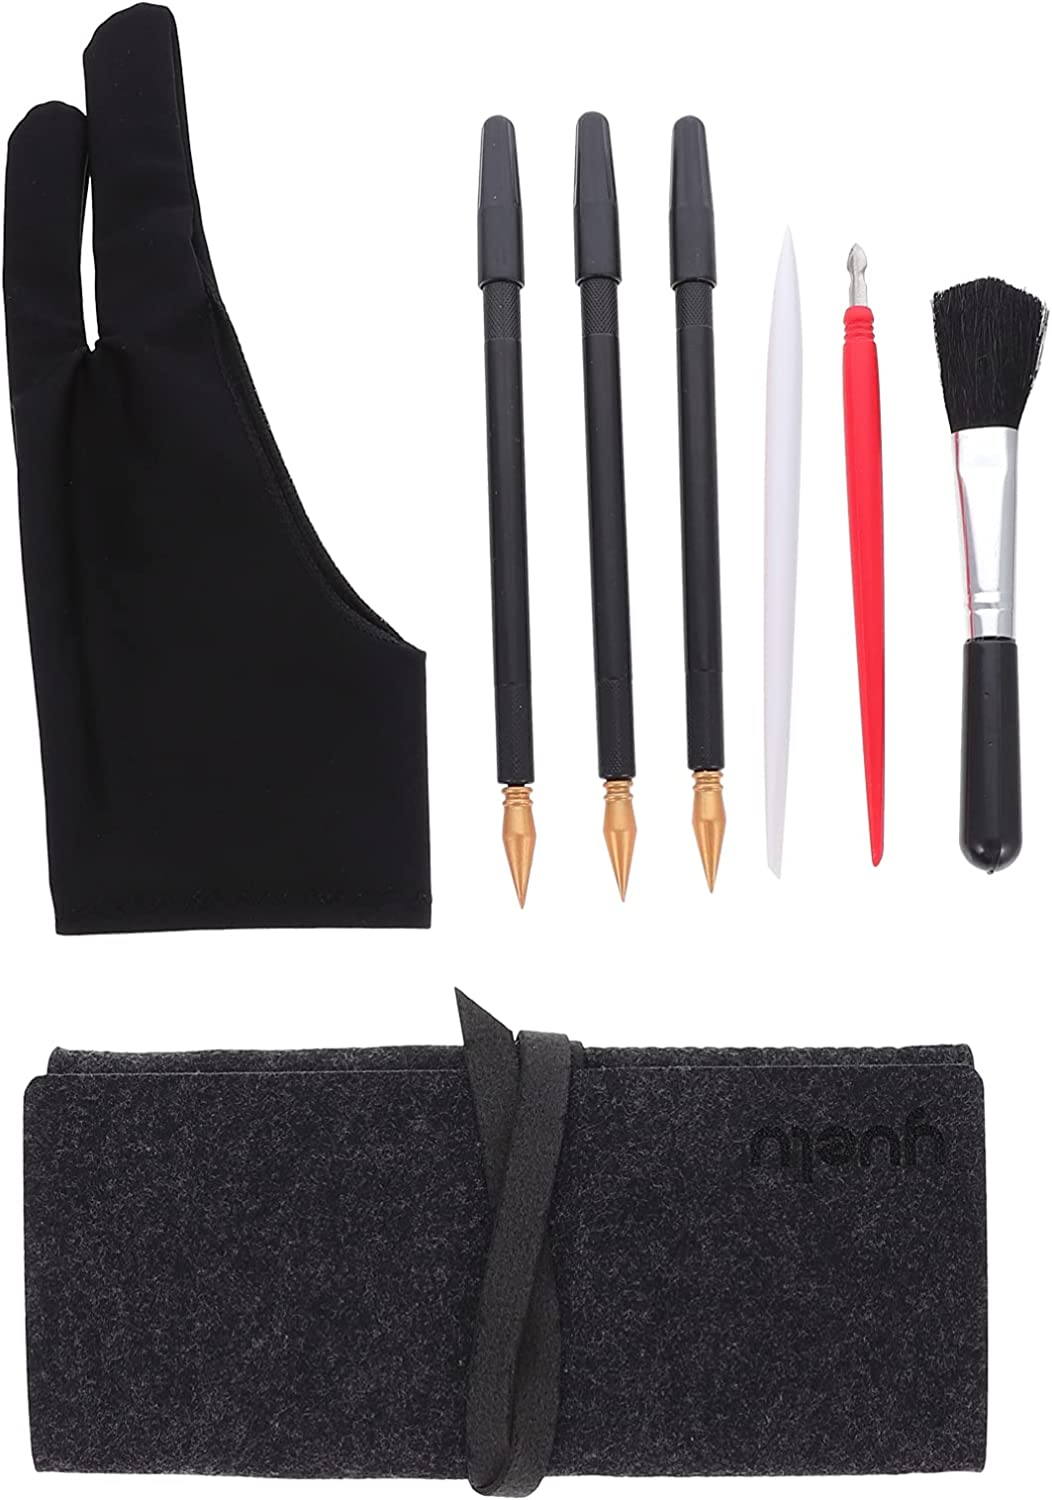 Limited Special Price Wakauto 8pcs Today's only Scratching Painting Tools Paint Scratch Include Set